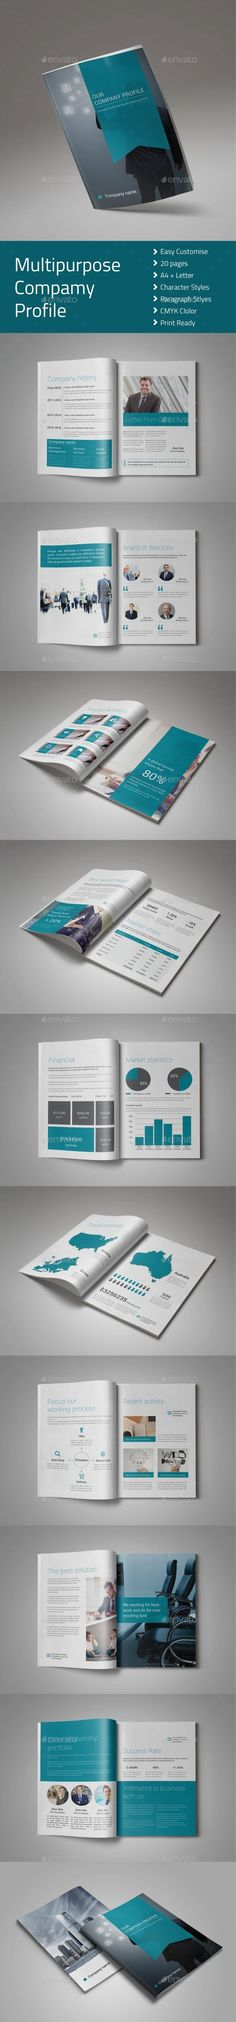 Modern Company Profile Brochure Company profile, Brochure - company profile templates word